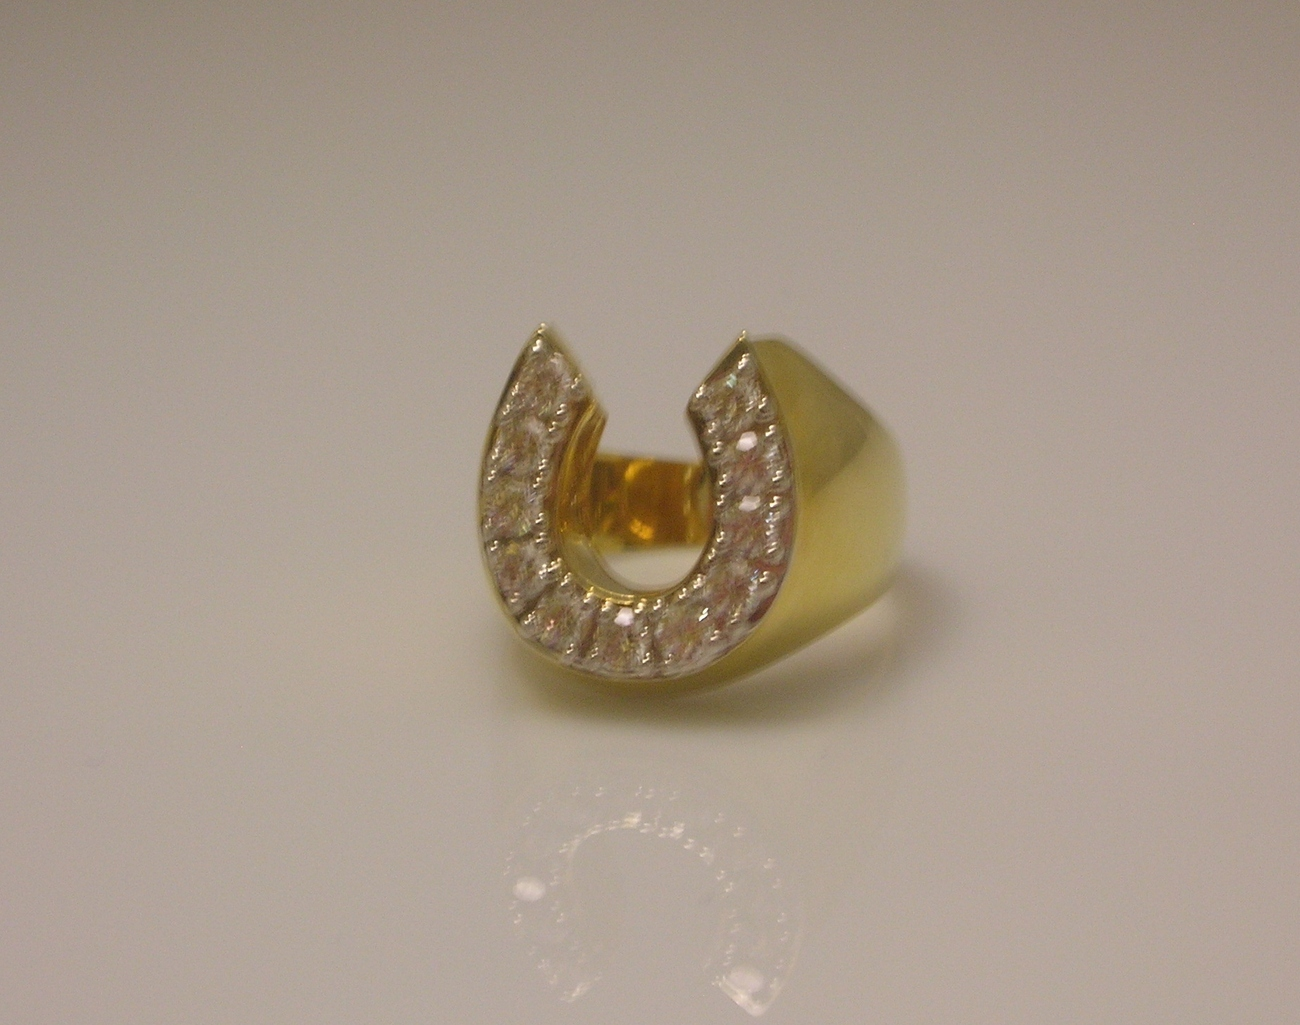 Horseshoe_cubic_zirconia_gold_mens_ring__7_